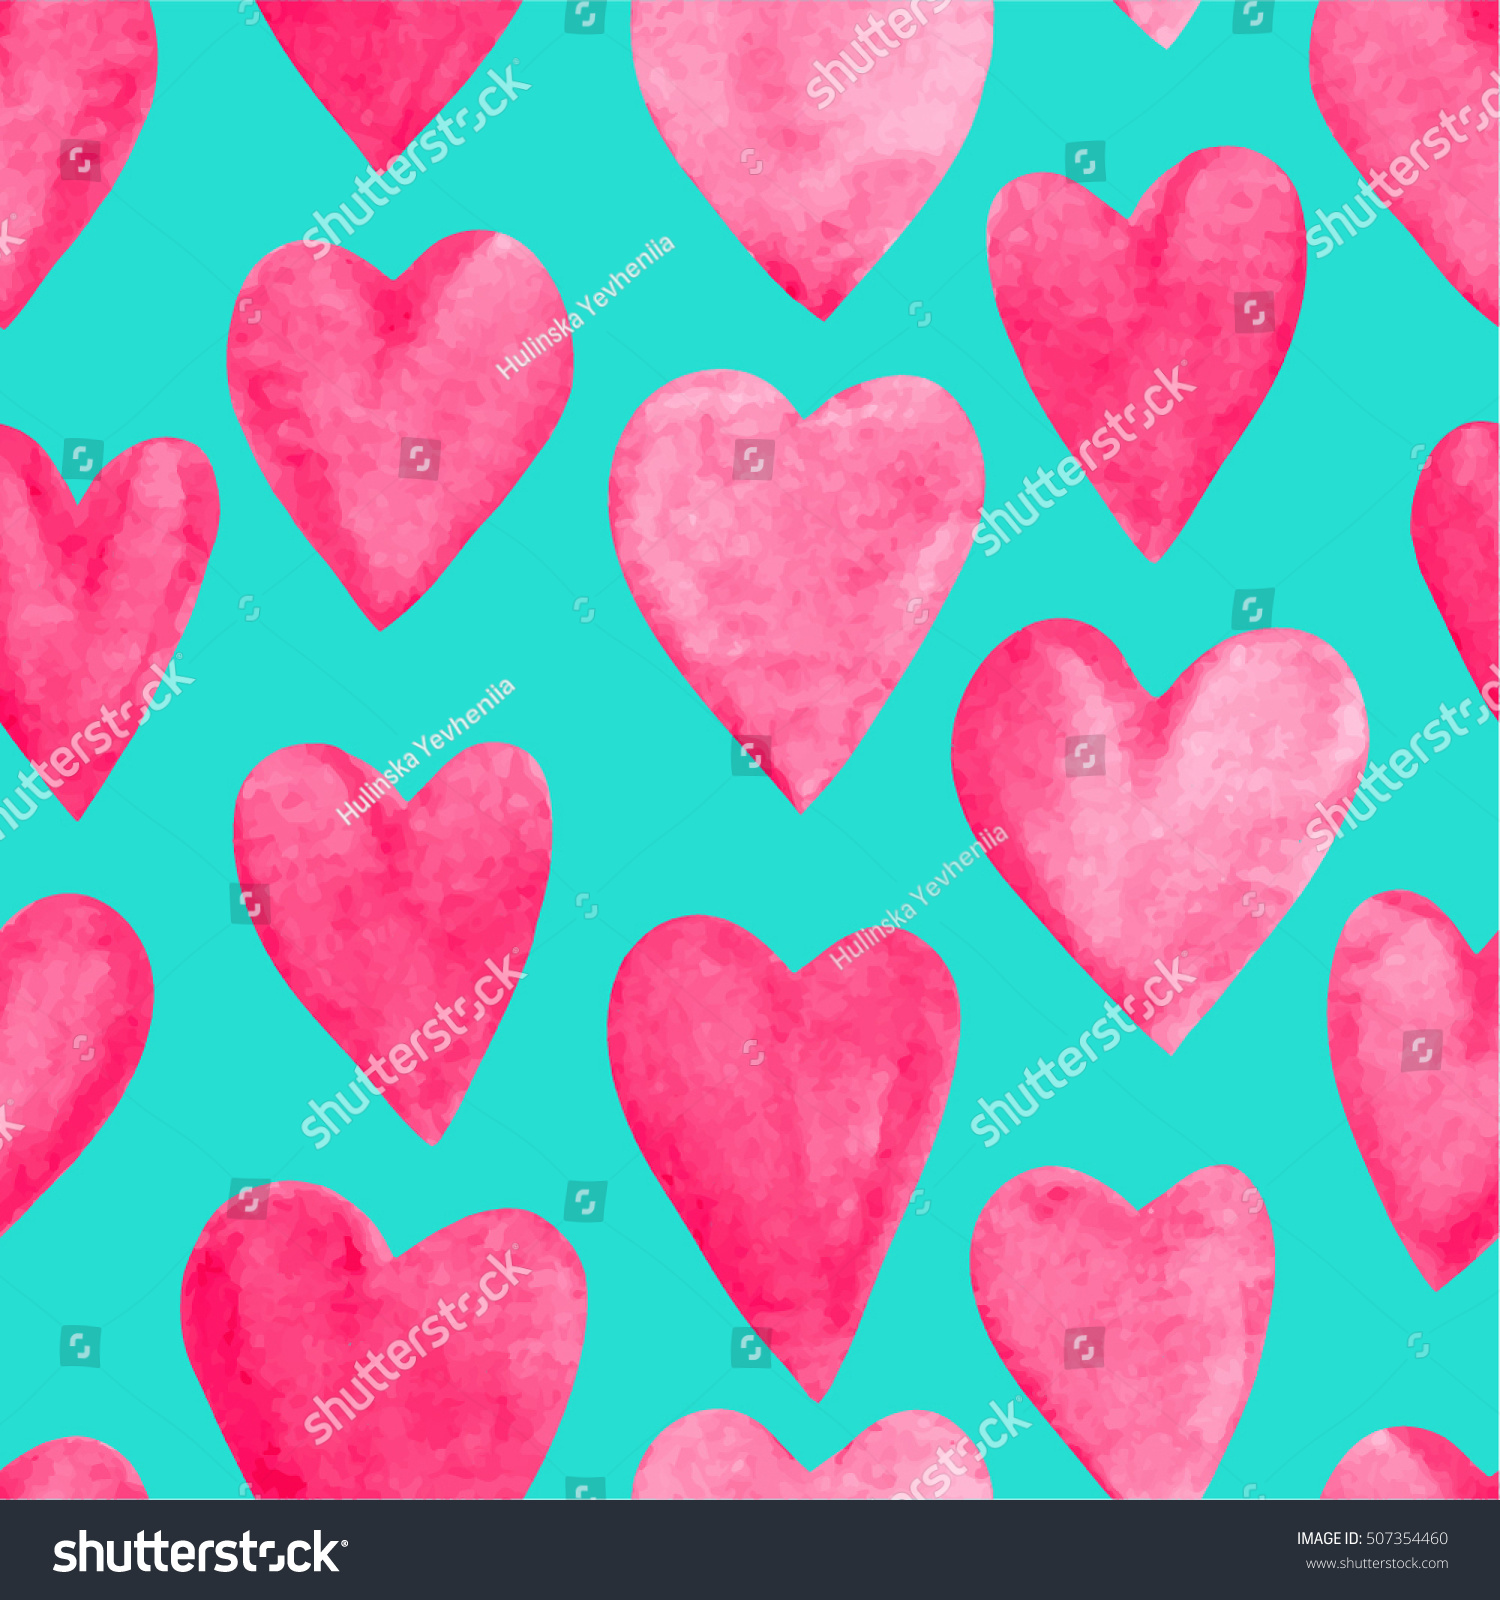 Romantic vector seamless background greeting card wallpaper vector art - Beautiful Vector Illustration Seamless Pattern With Red Watercolor Hearts Background Romantic Design For Greeting